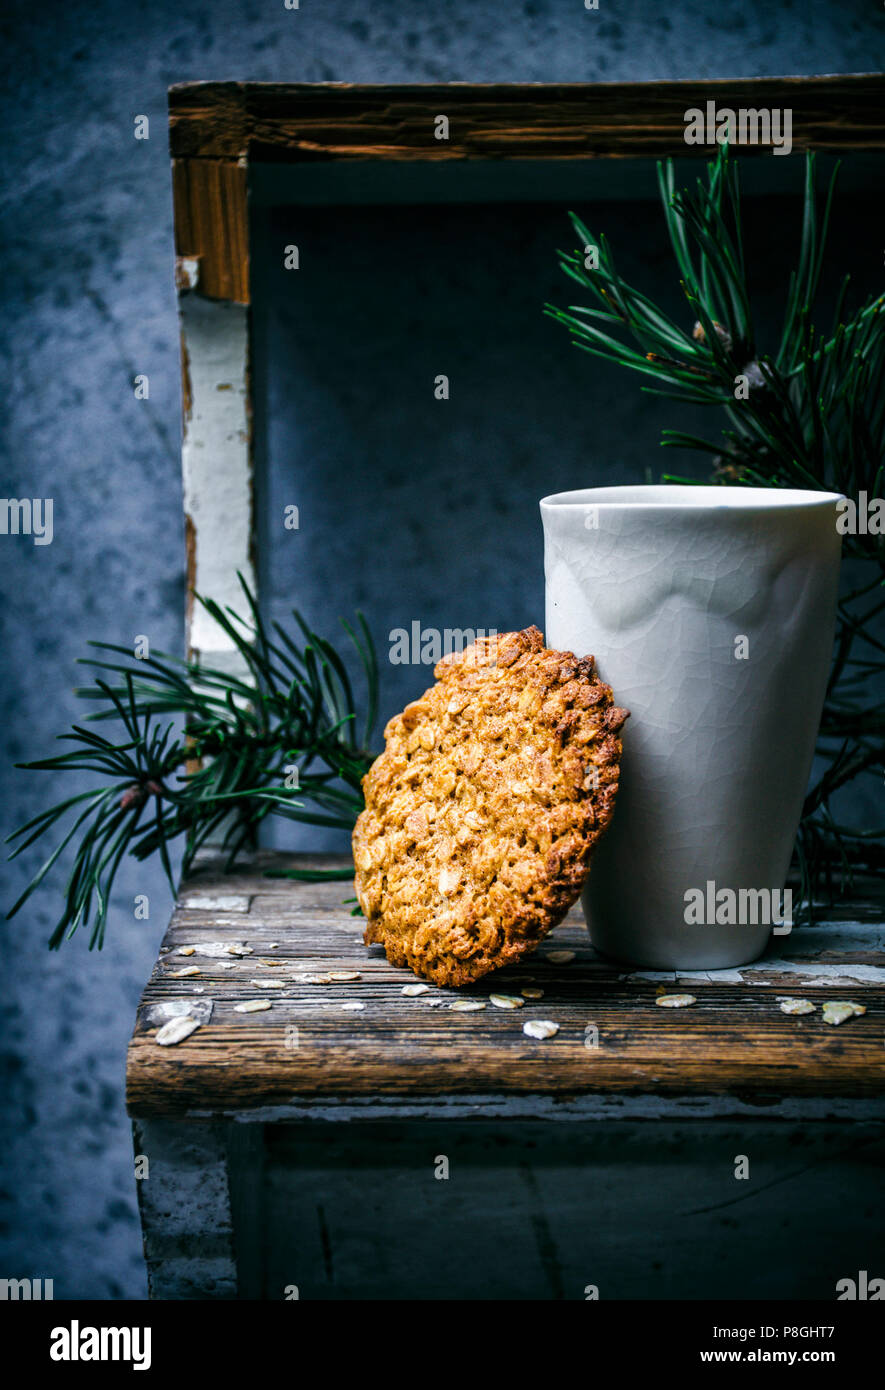 Thin honey and oat cookie with greenery and ceramic cup. - Stock Image